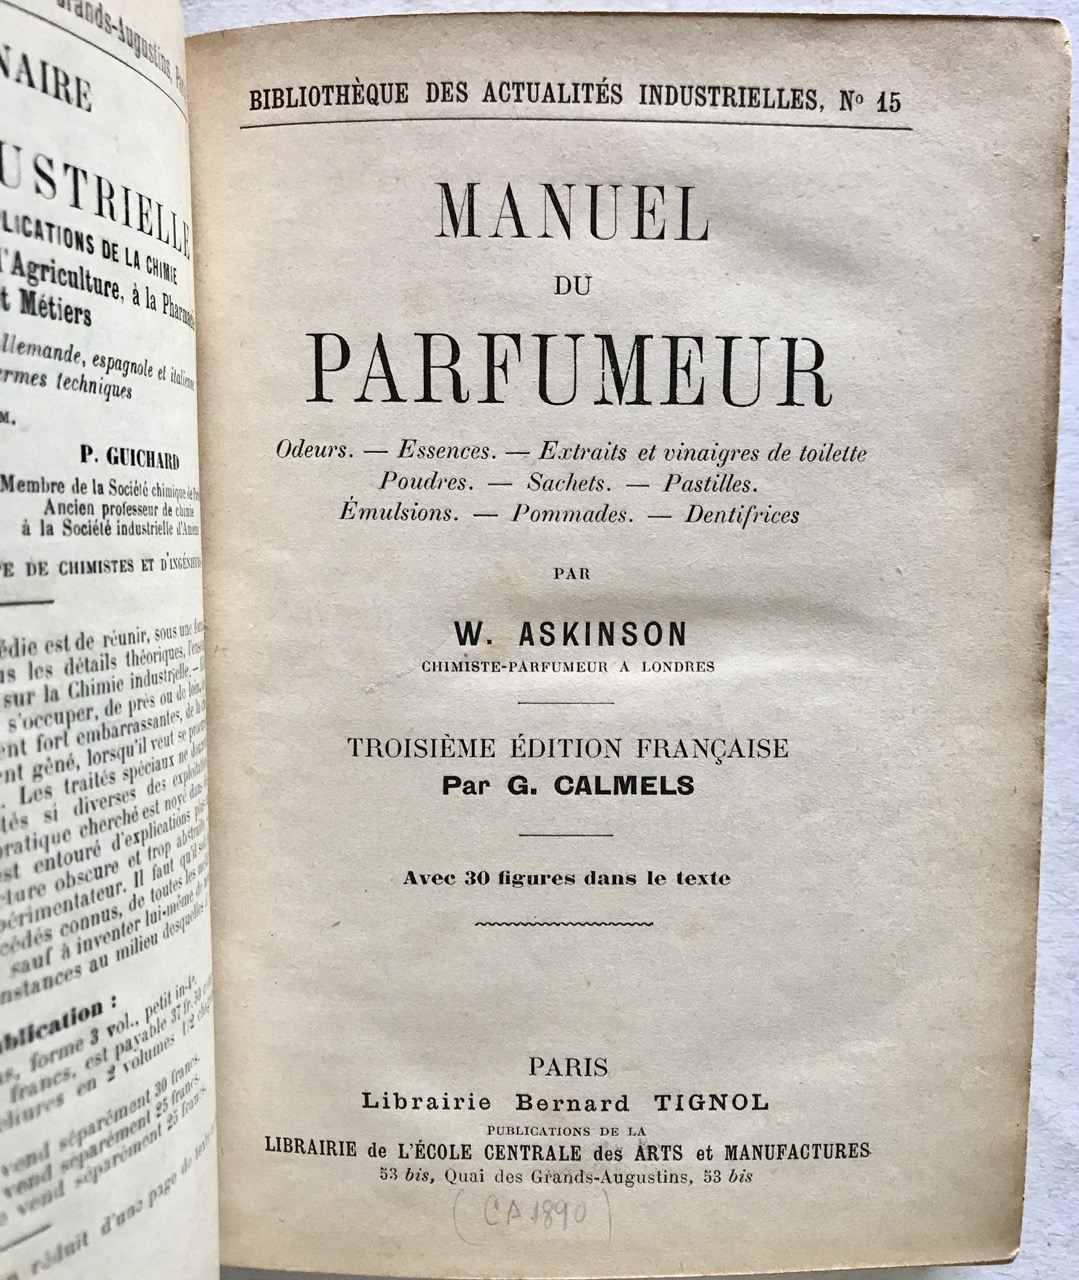 Image for Manuel du Parfumeur. Troisieme Edition Francaise [Manual of Perfume]